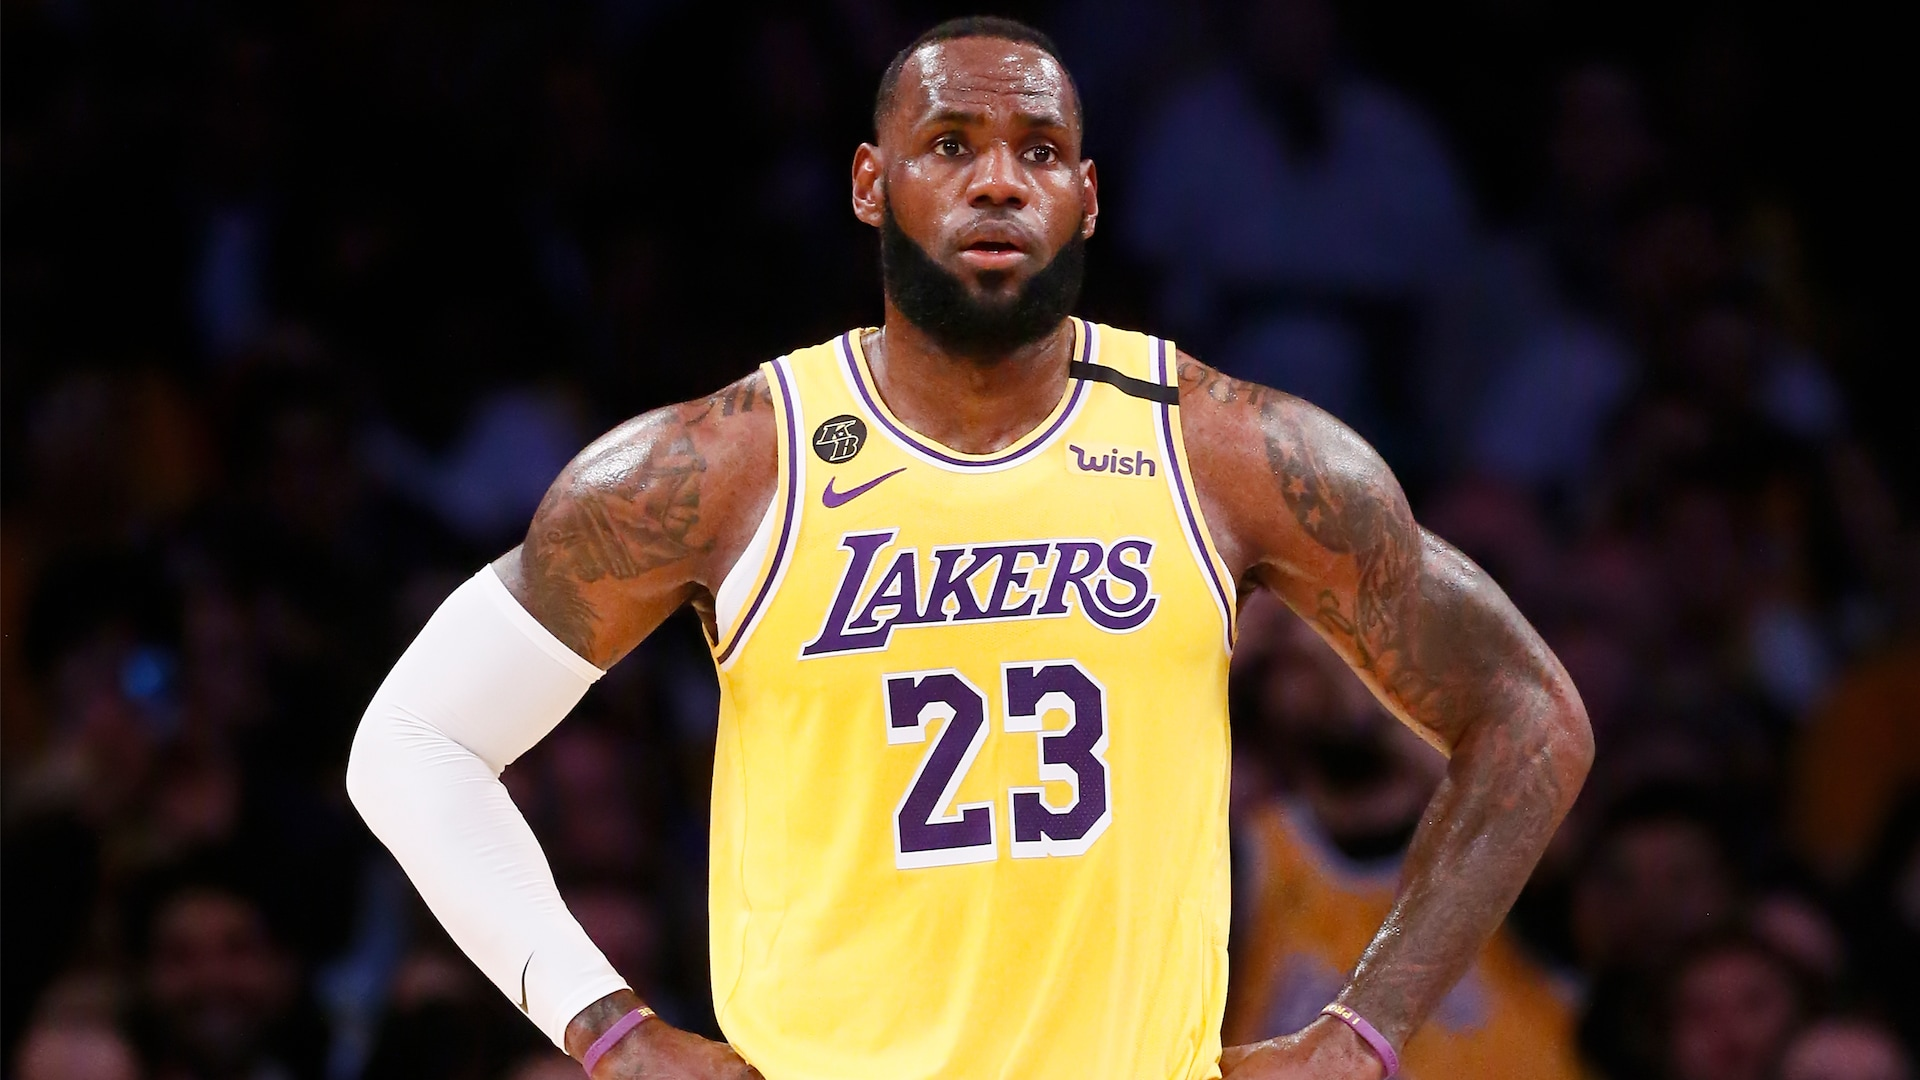 LeBron: No closure if we can't finish this season